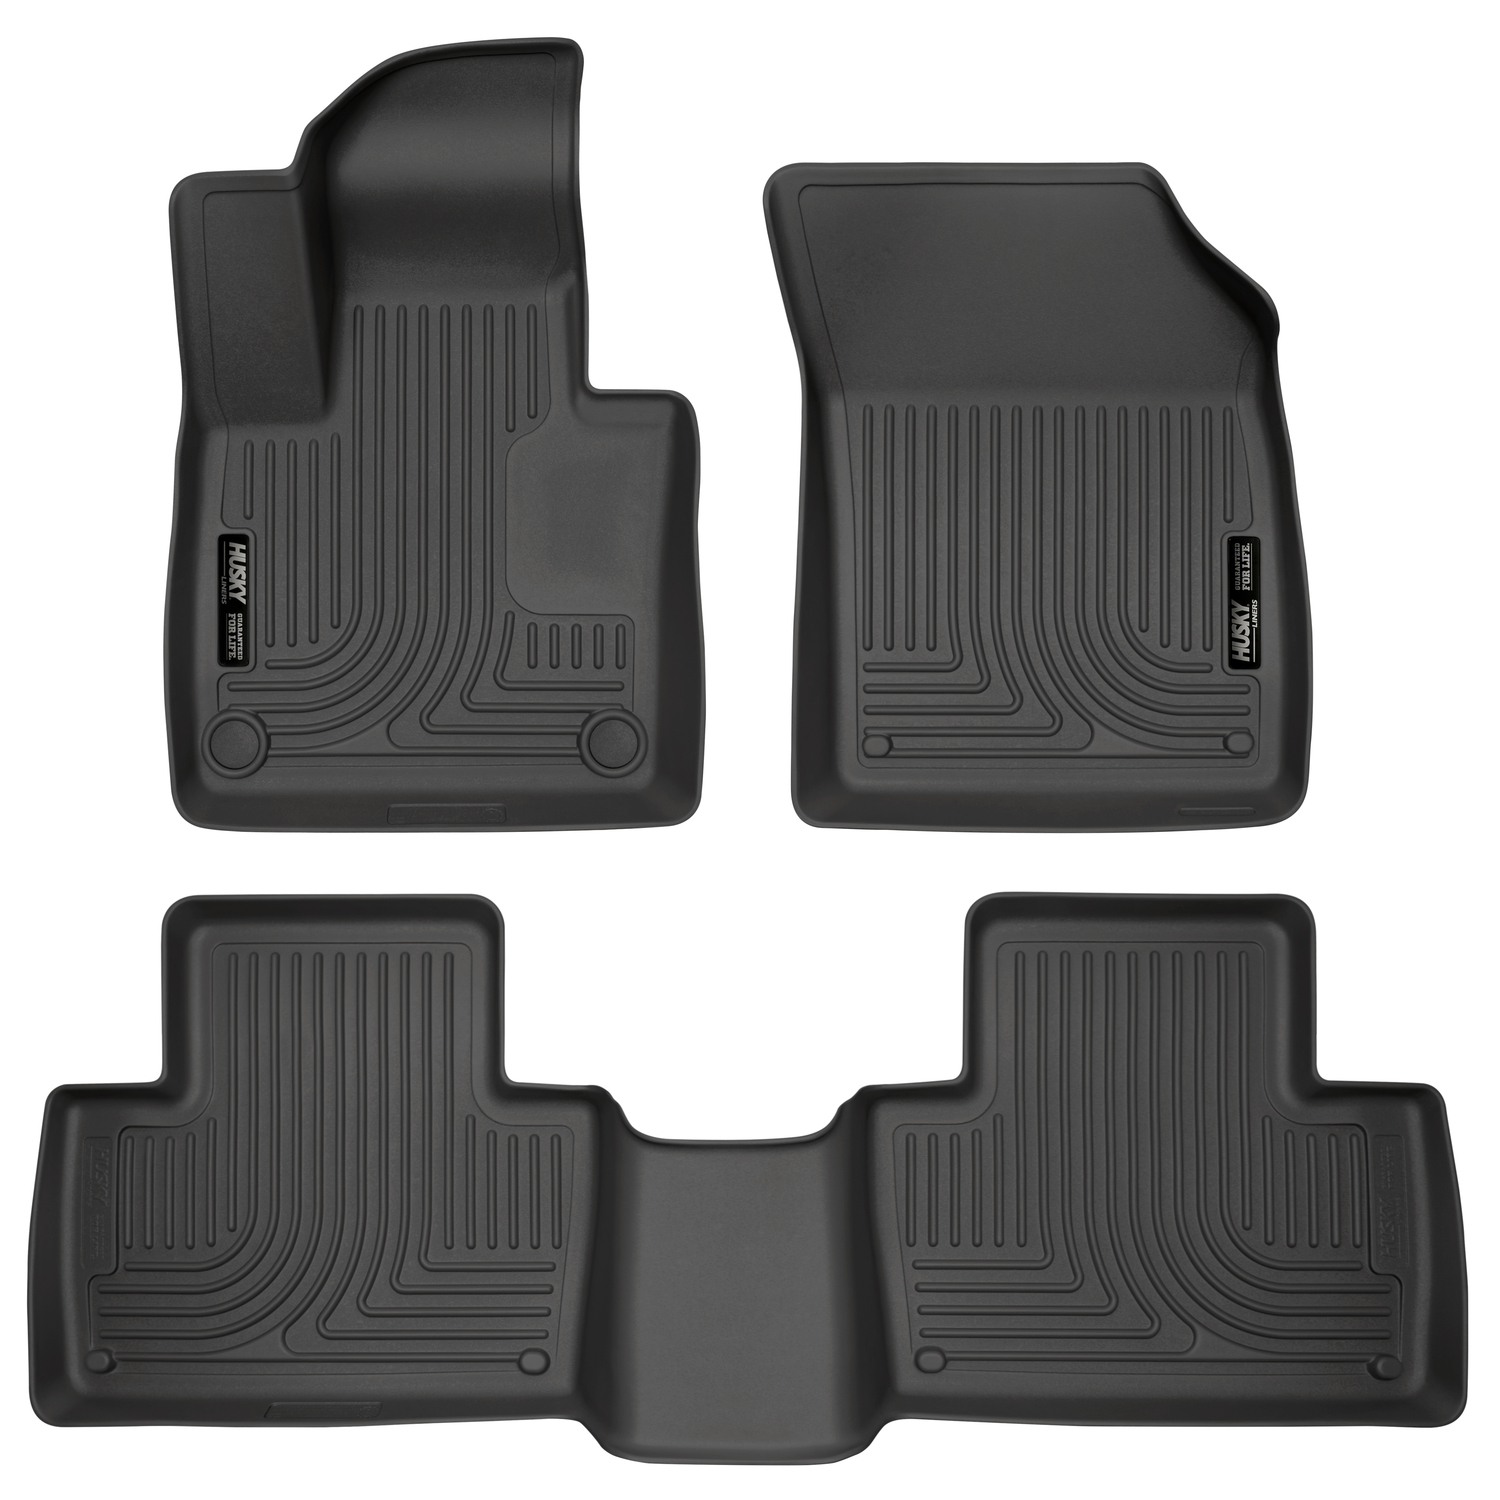 Фото - Коврики салона (резиновые) Husky Liners 95601 для Volvo XC90 2015- 2017 hot sale silicone increased insoles damping insole heel inserts pads gel cushions shoe liners accessories 5 layers 4 1cm